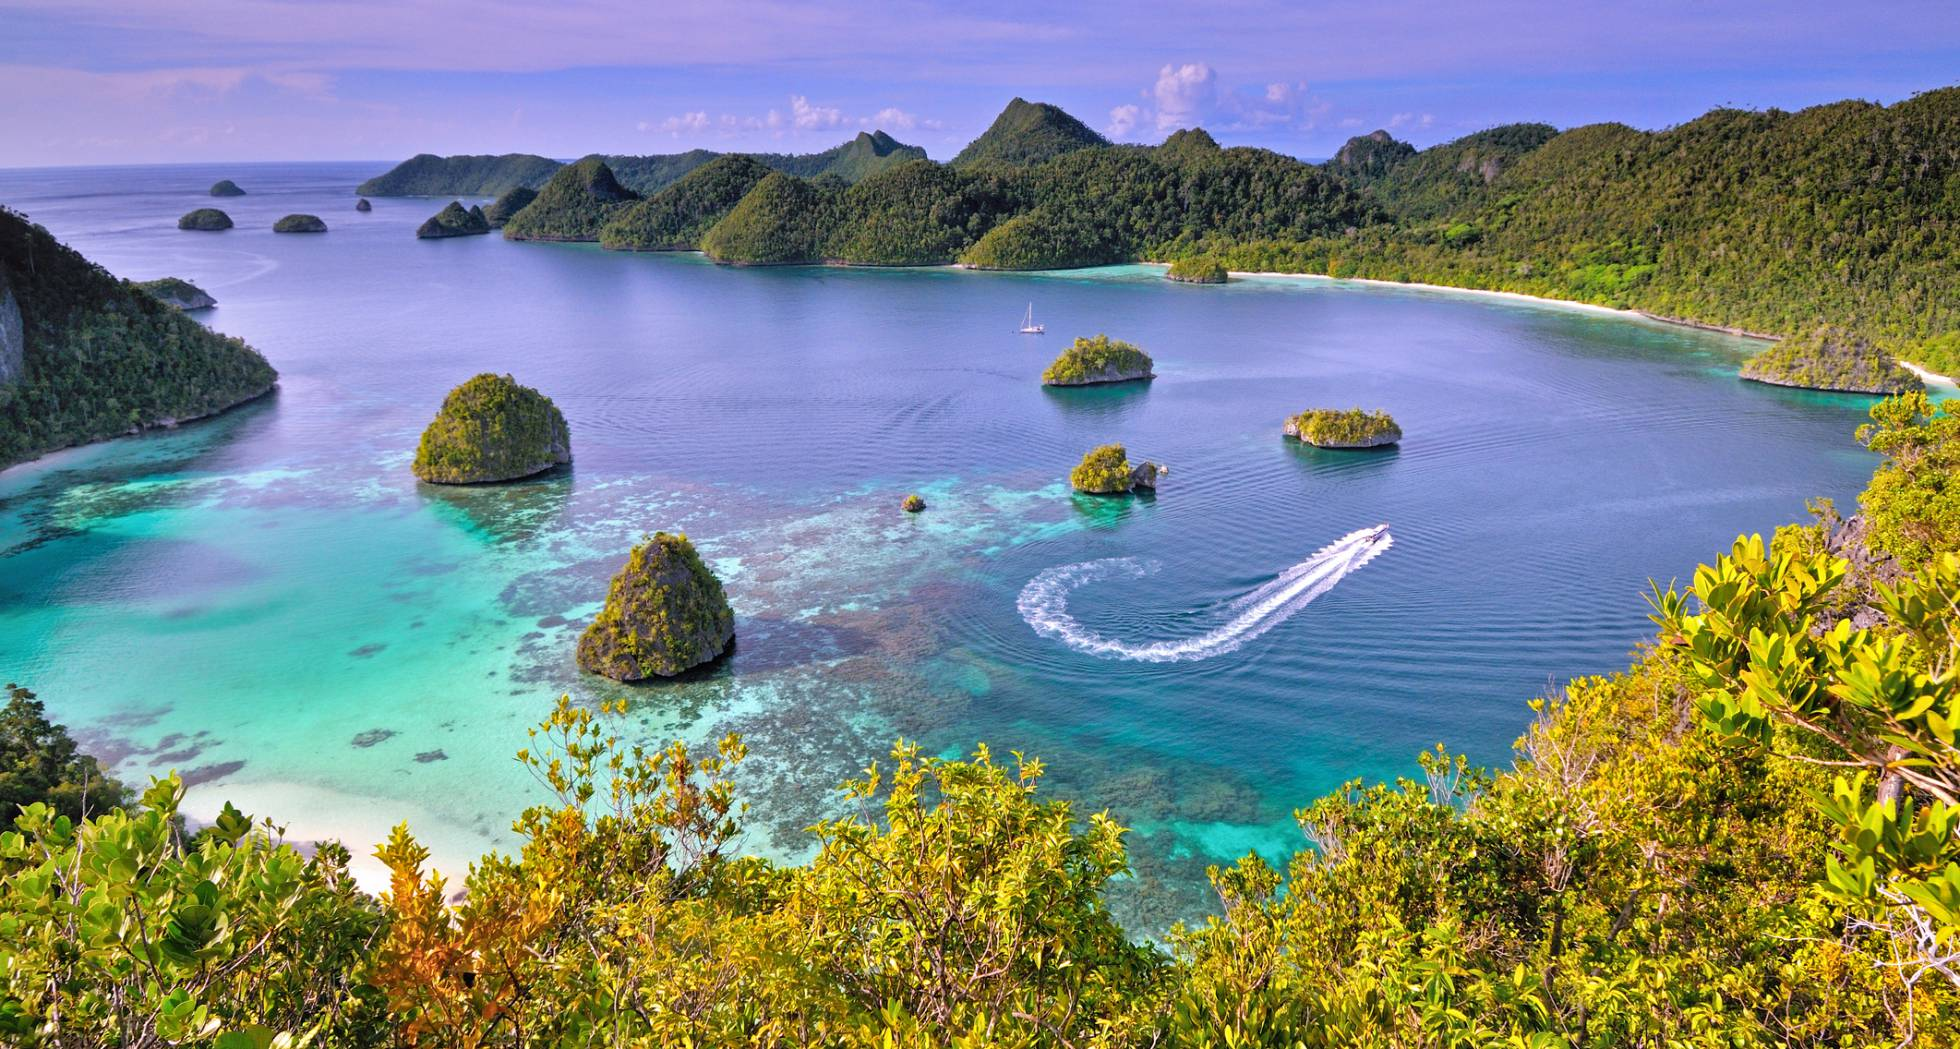 The beautiful islands of Indonesia for your audiovisual